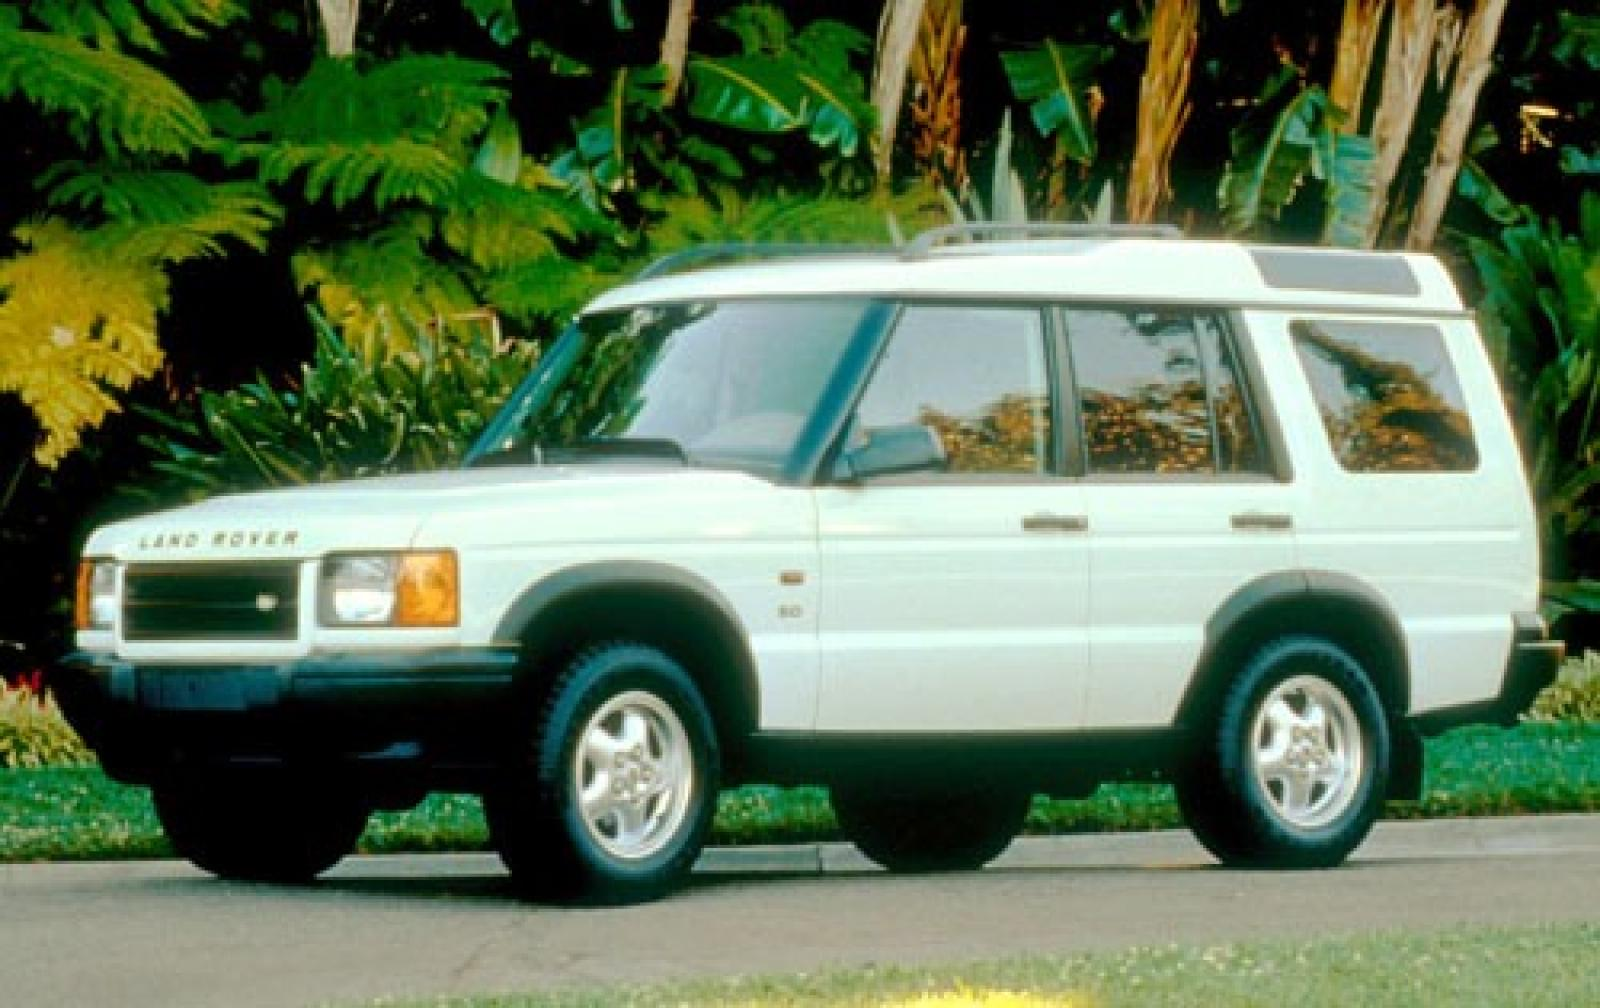 2001 Land Rover Discovery Series Ii Green 200 Interior And Exterior Images